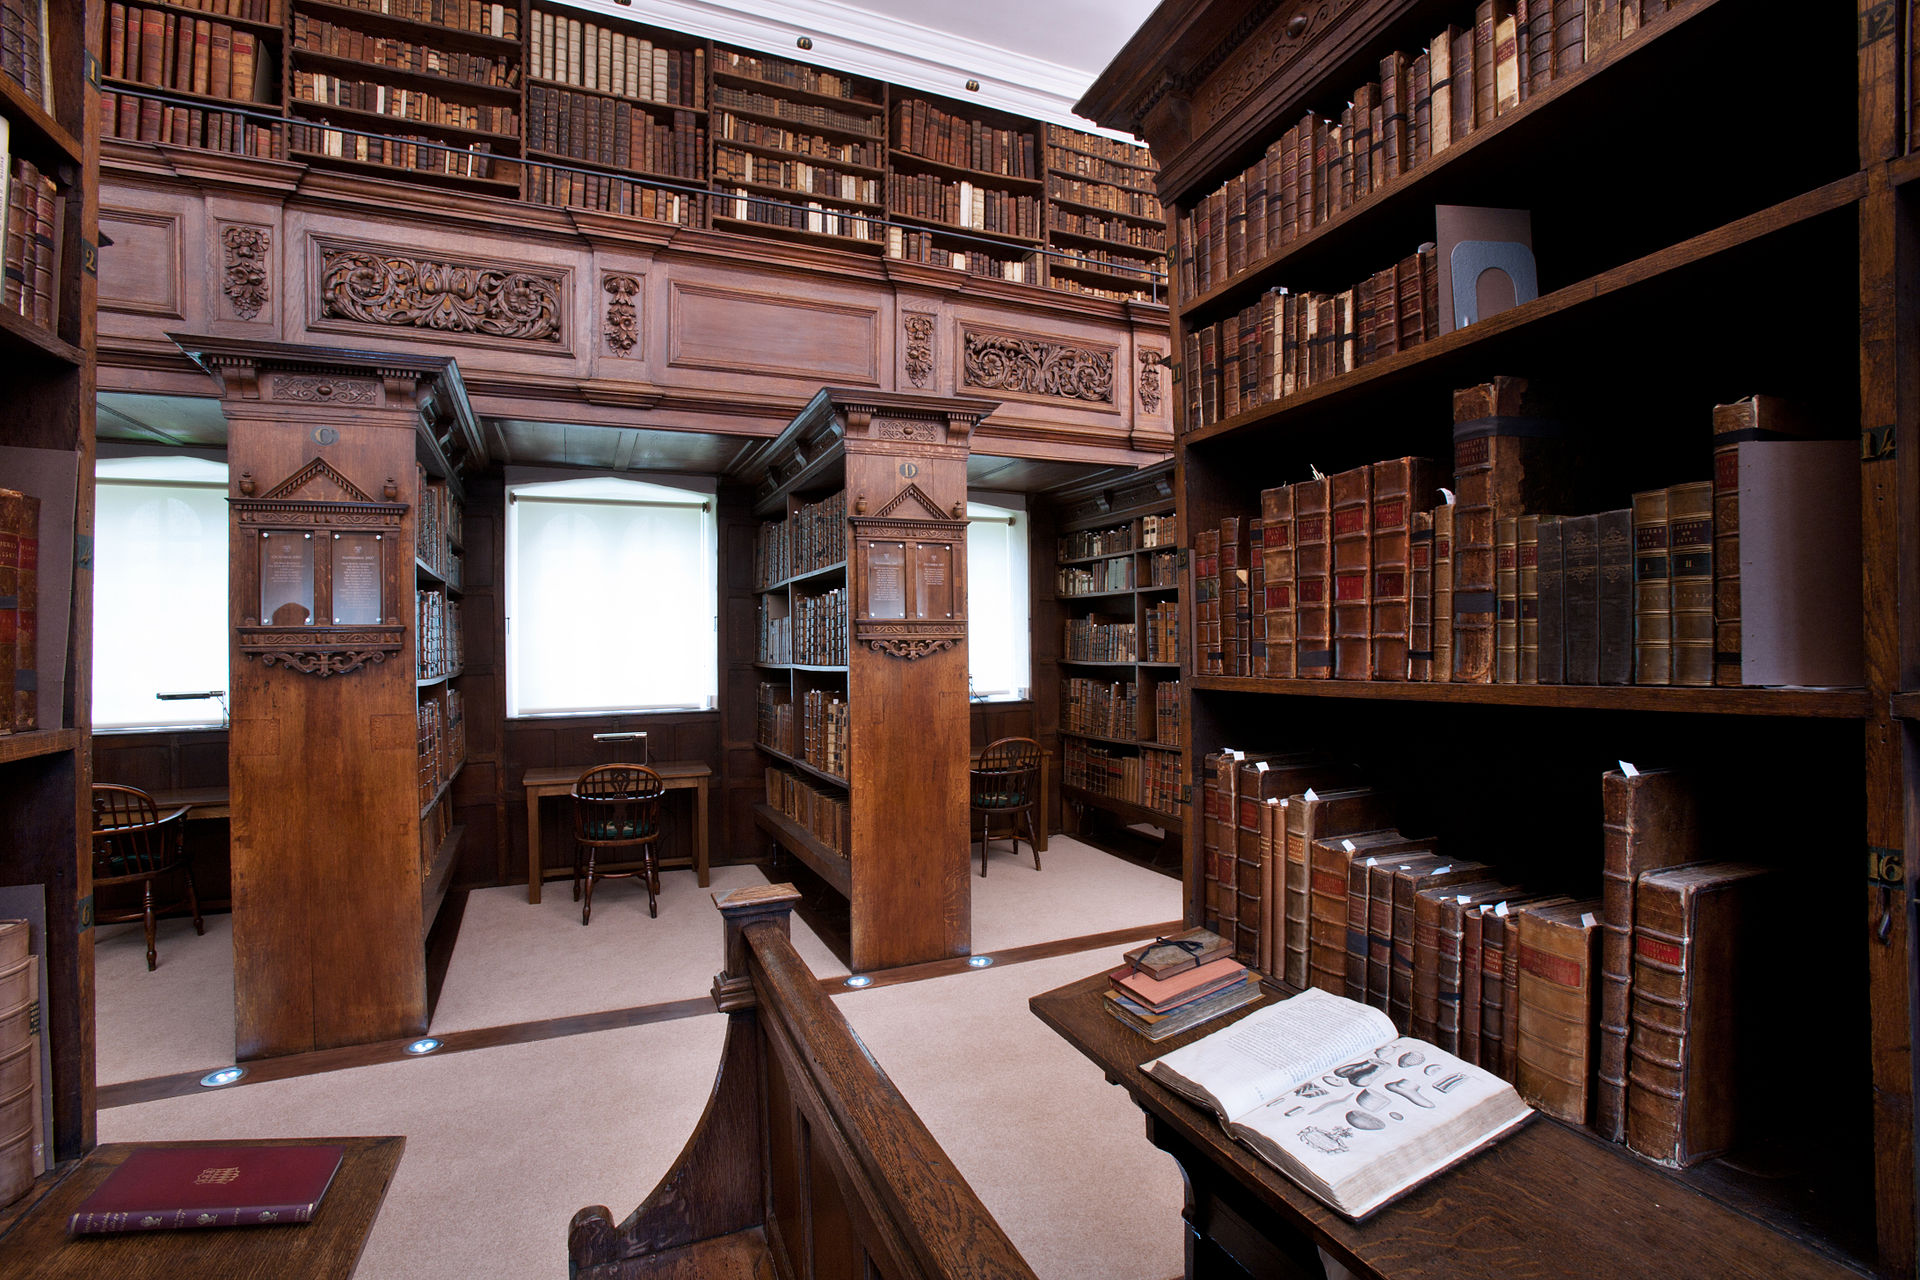 Fellows' Library (Creative Commons)